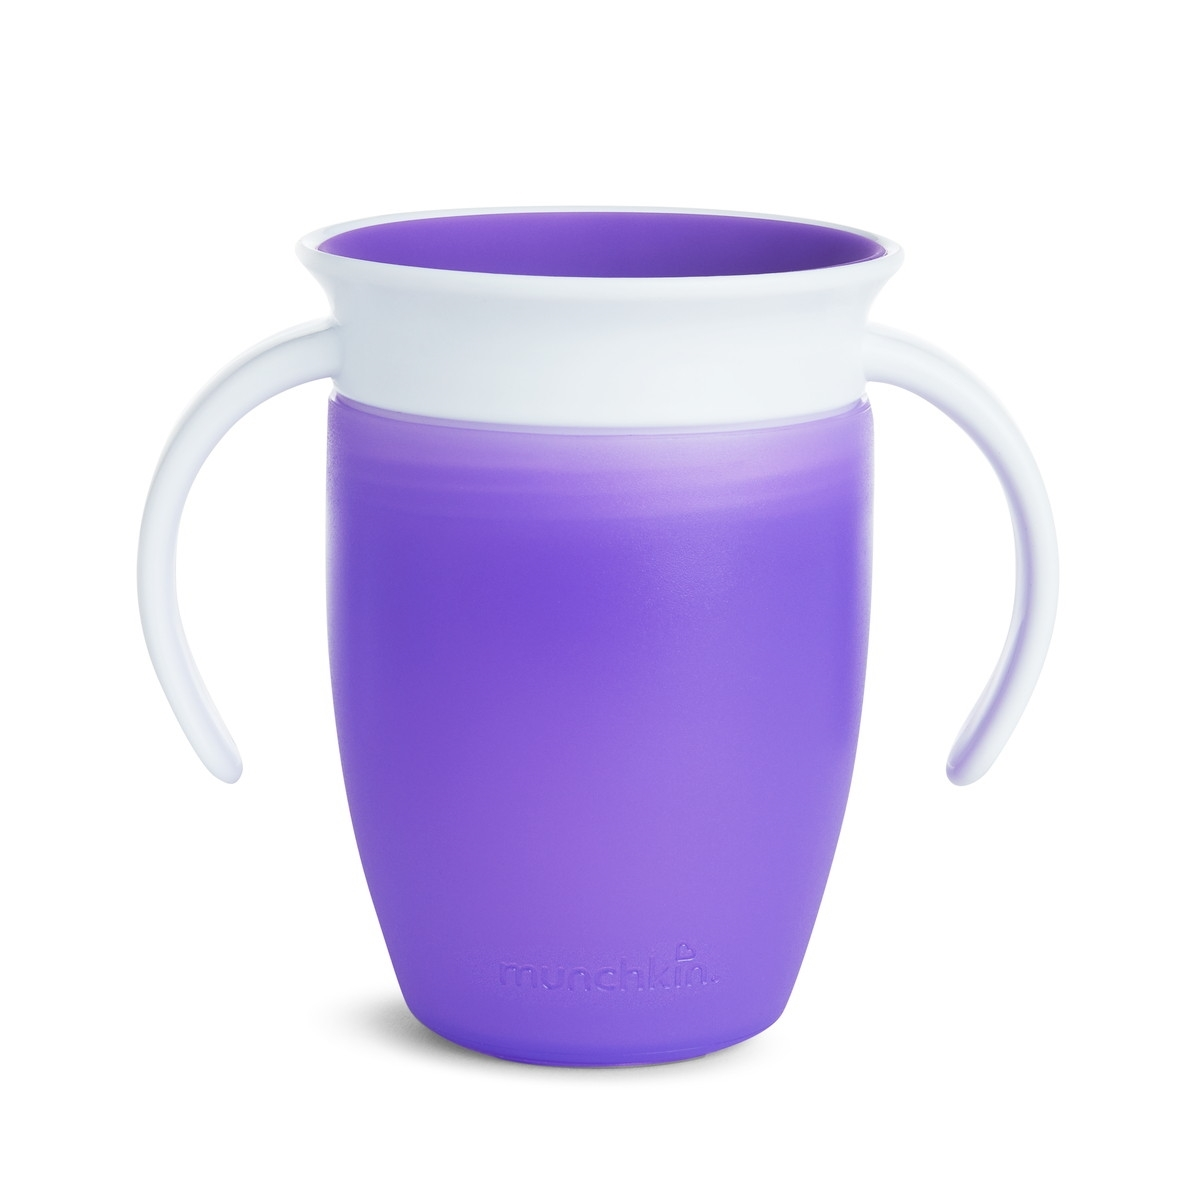 Munchkin Κύπελο Miracle 360° Trainer Cup Purple/White 207ml.